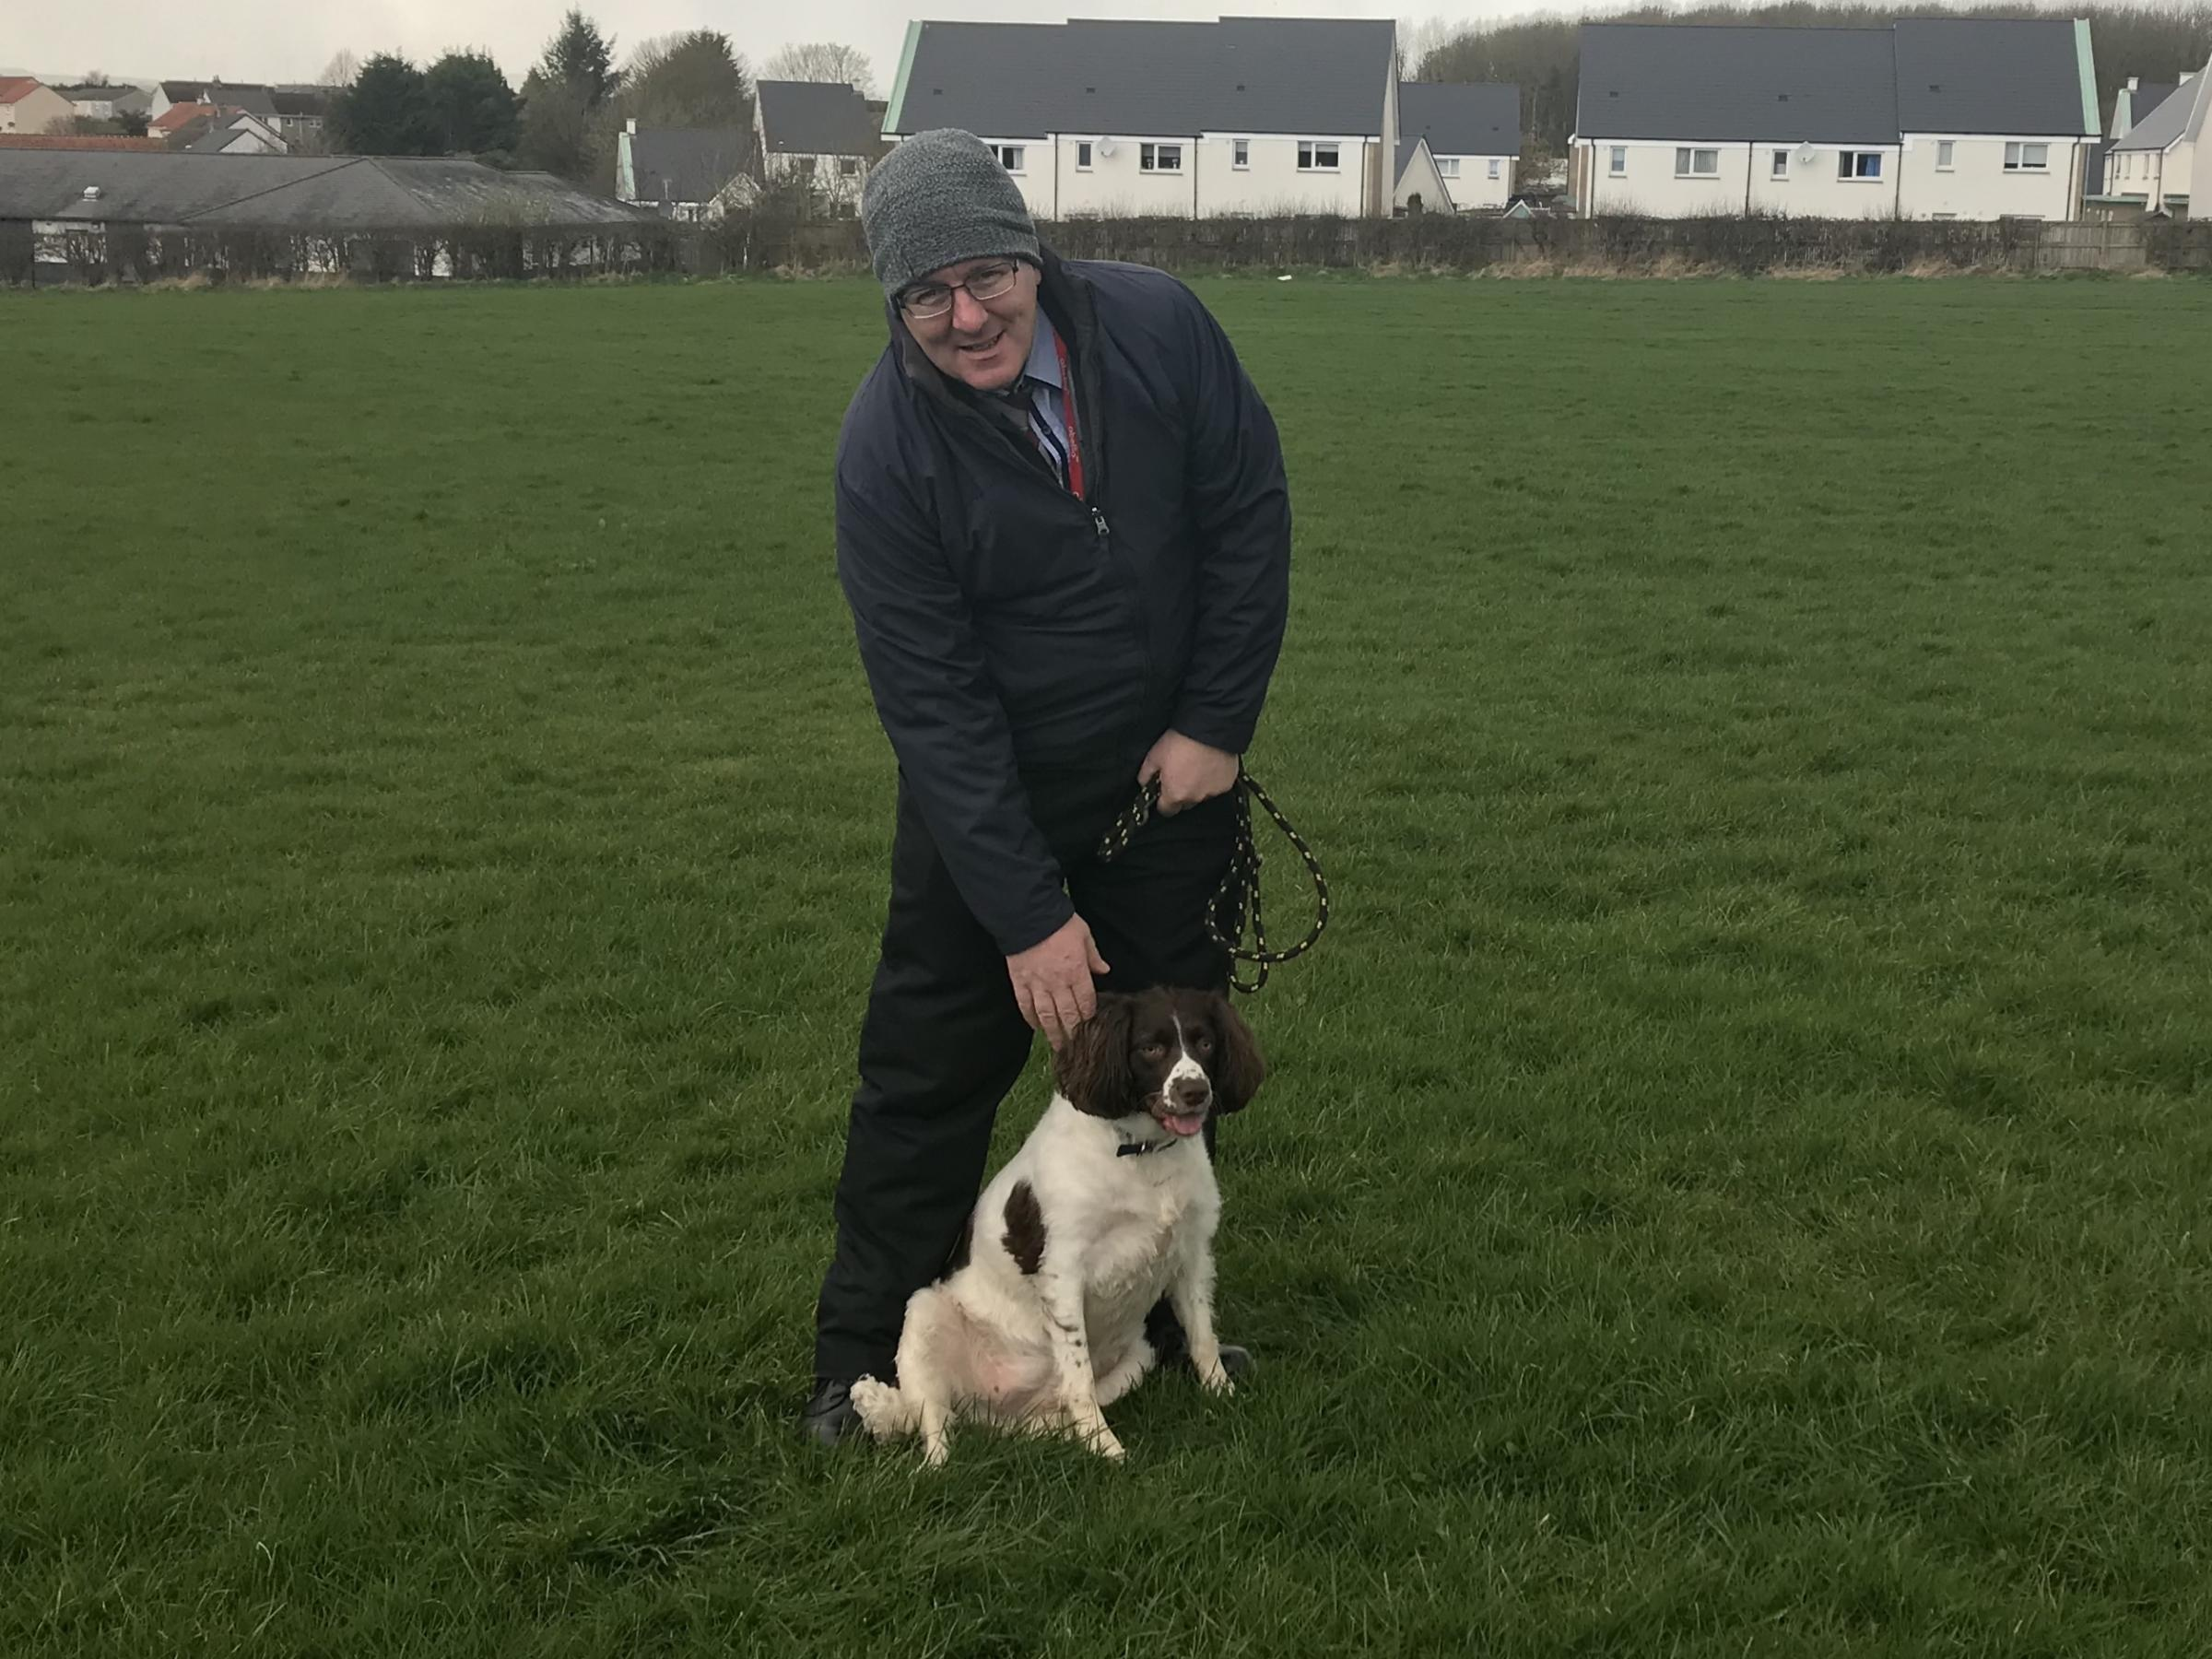 Councillor Donald Reid is consulting on a dog lead free zone in Kilwinning